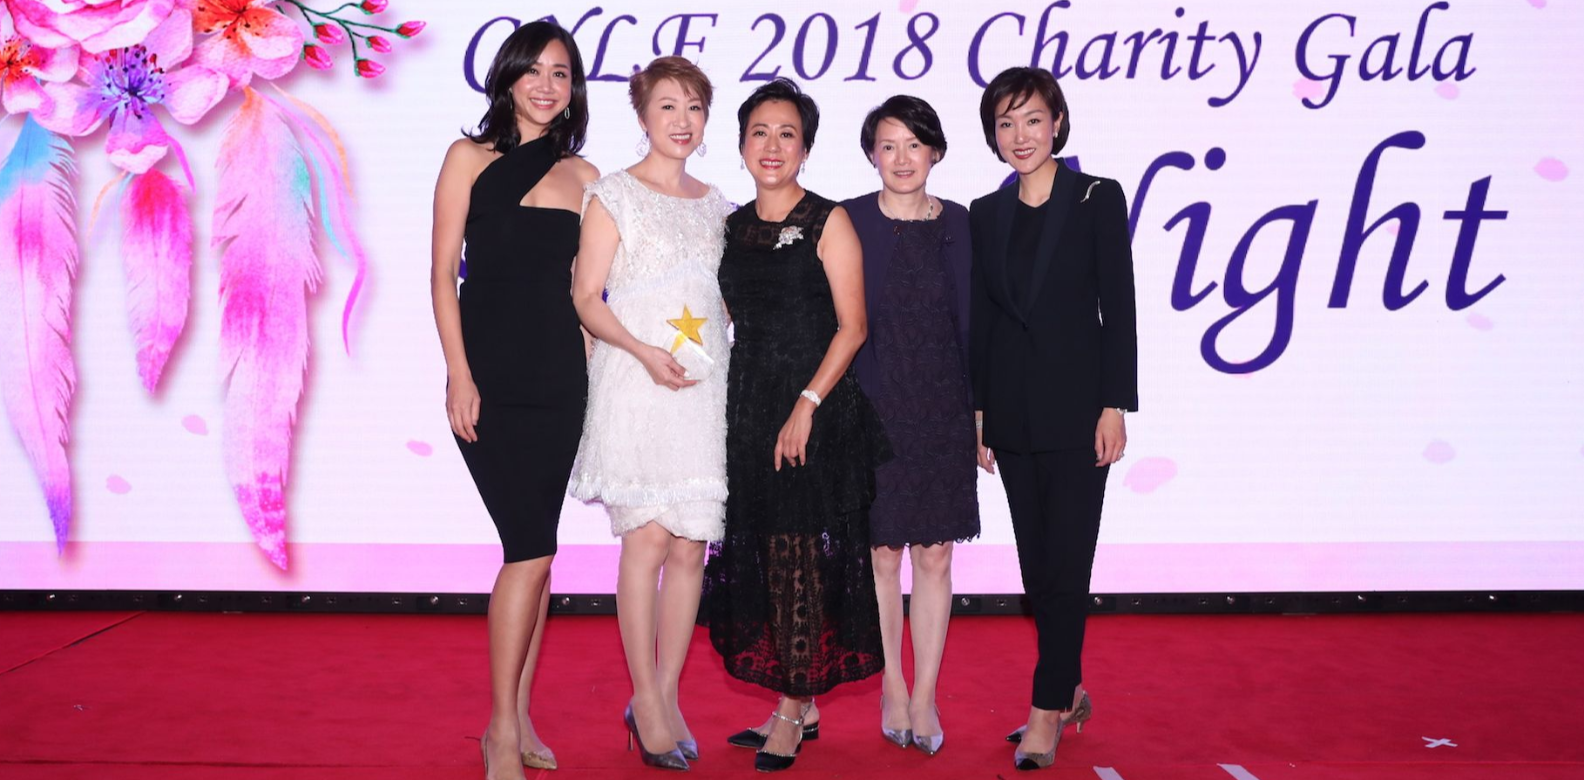 Angie Ting, Michelle Ma-Chan, Yvette Ho, Sheilah Chatjaval, Jane Chao-Lee